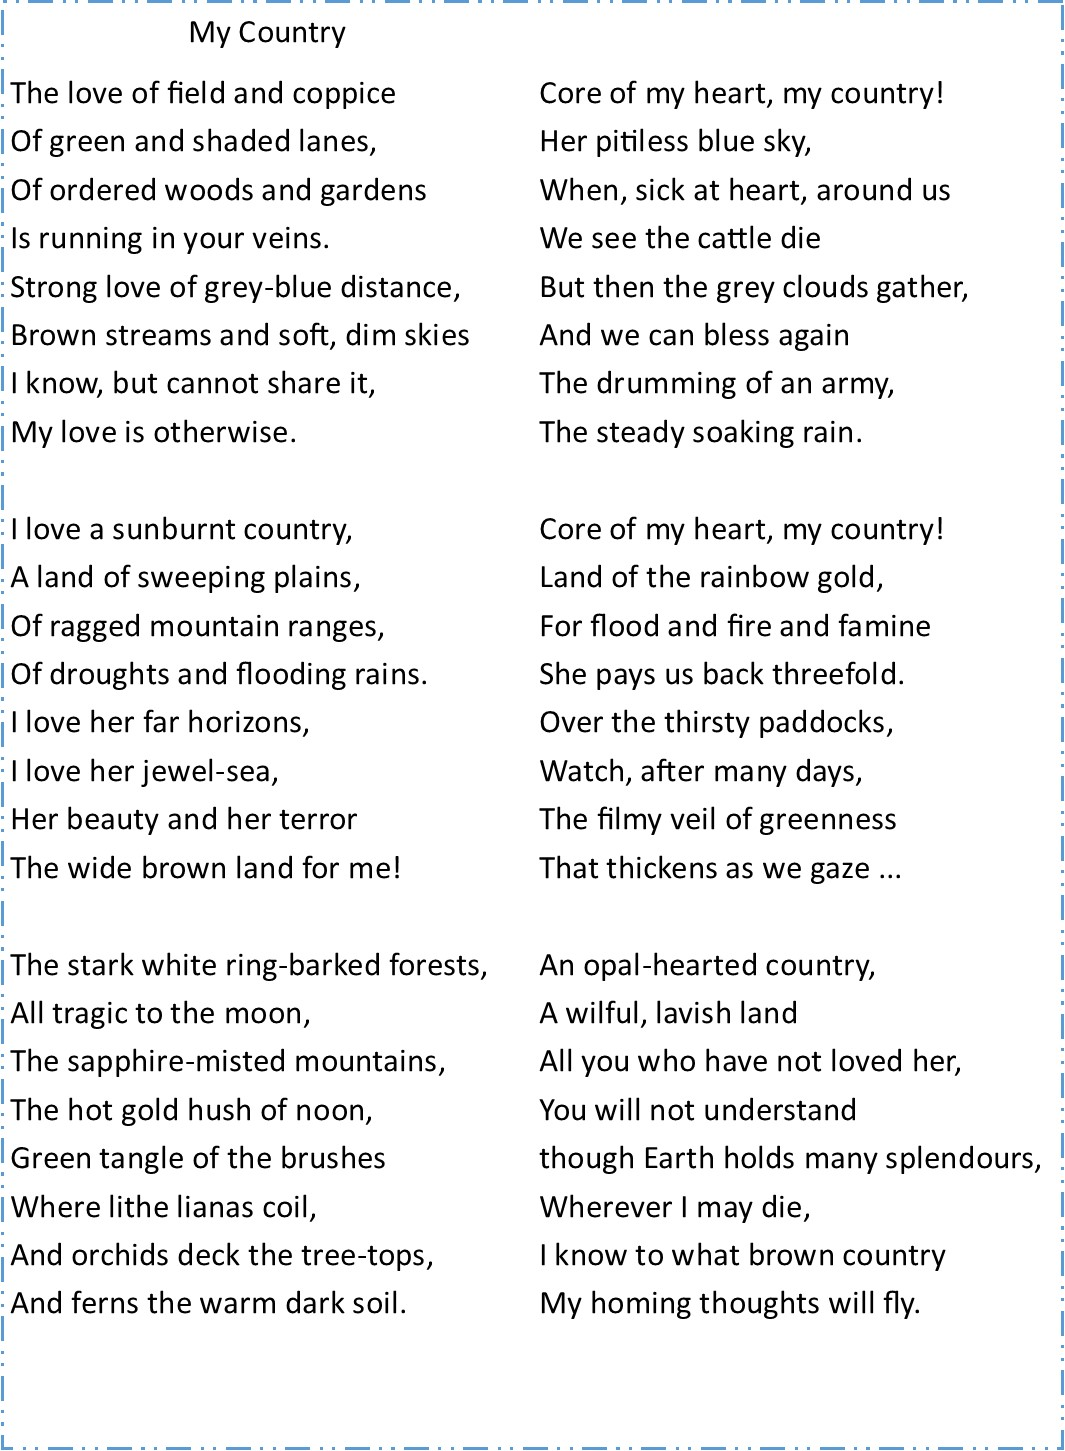 analysis of poetry Use our sample 'sample poetry analysis' read it or download it for free free help from wikihow.